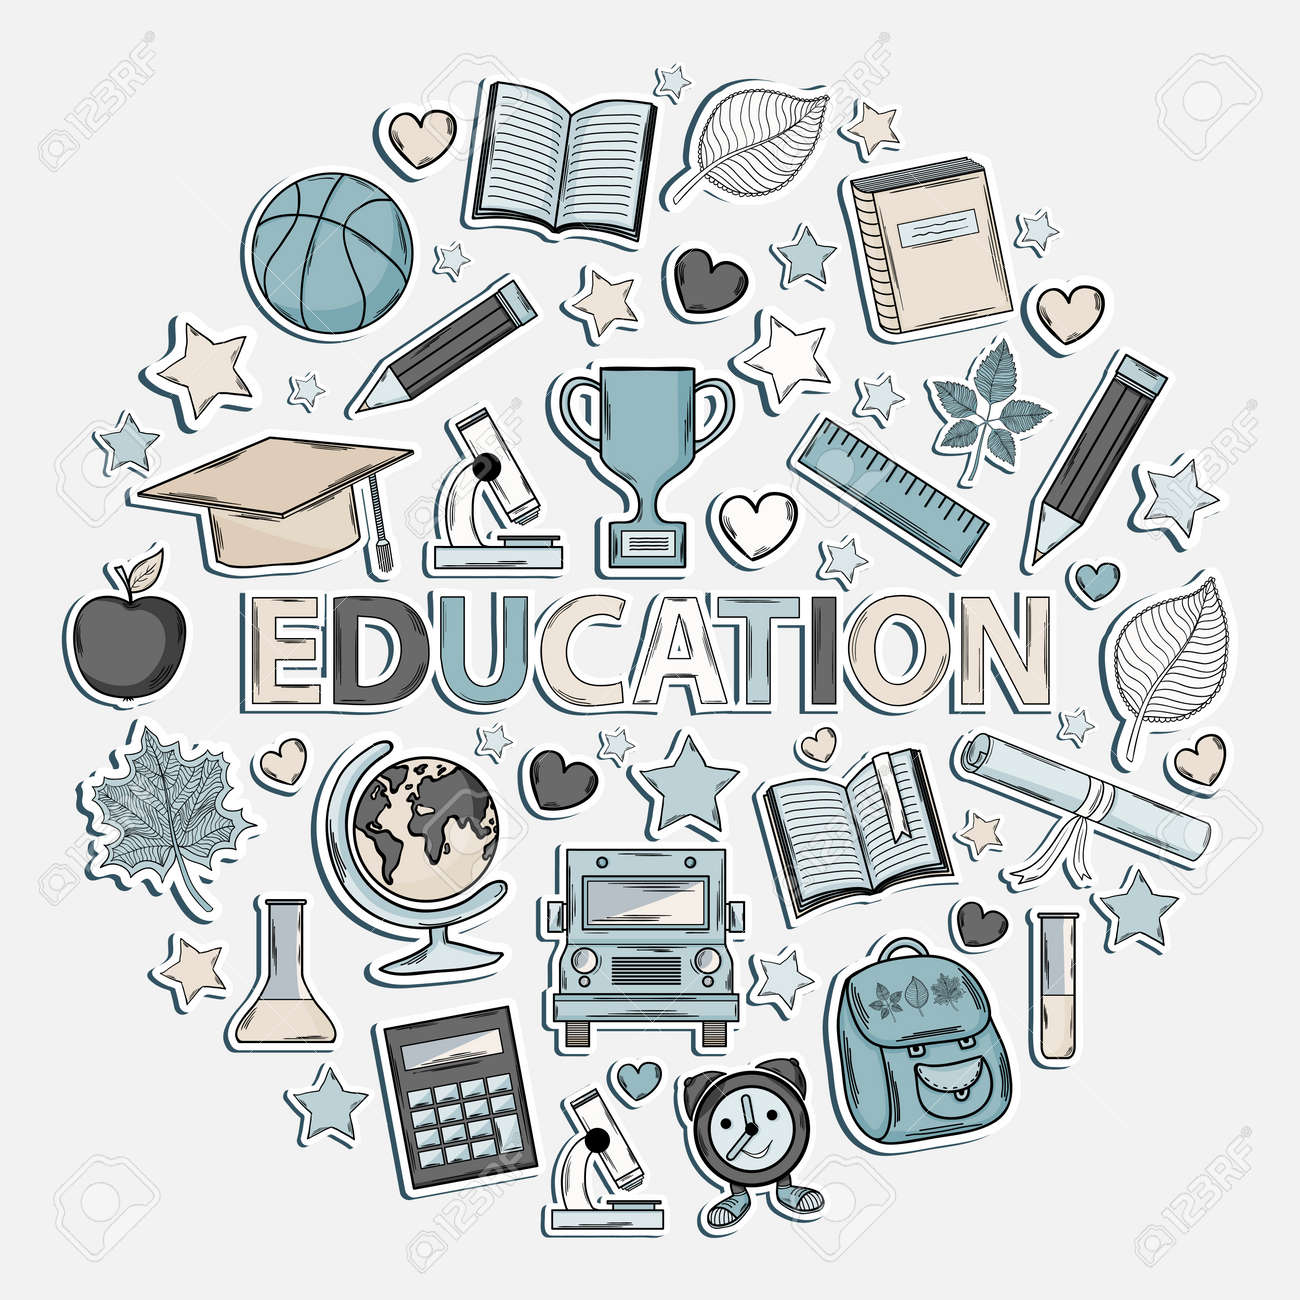 Education set icon in the form of a circle isolated on a white